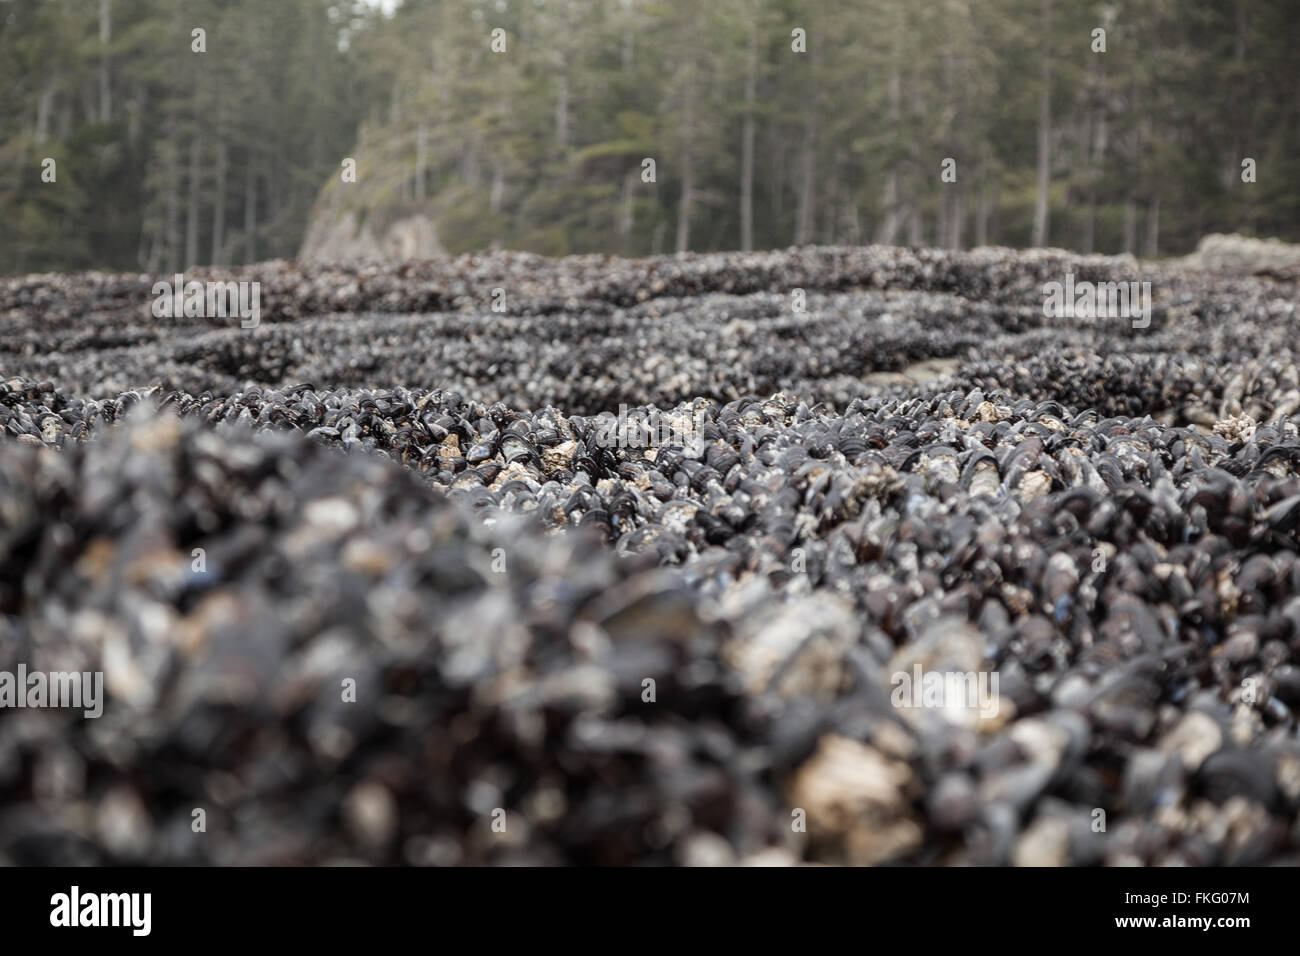 Colony of Blue Mussels (Mytilus edulis) on Vancouver Island near Cape Beal - Stock Image